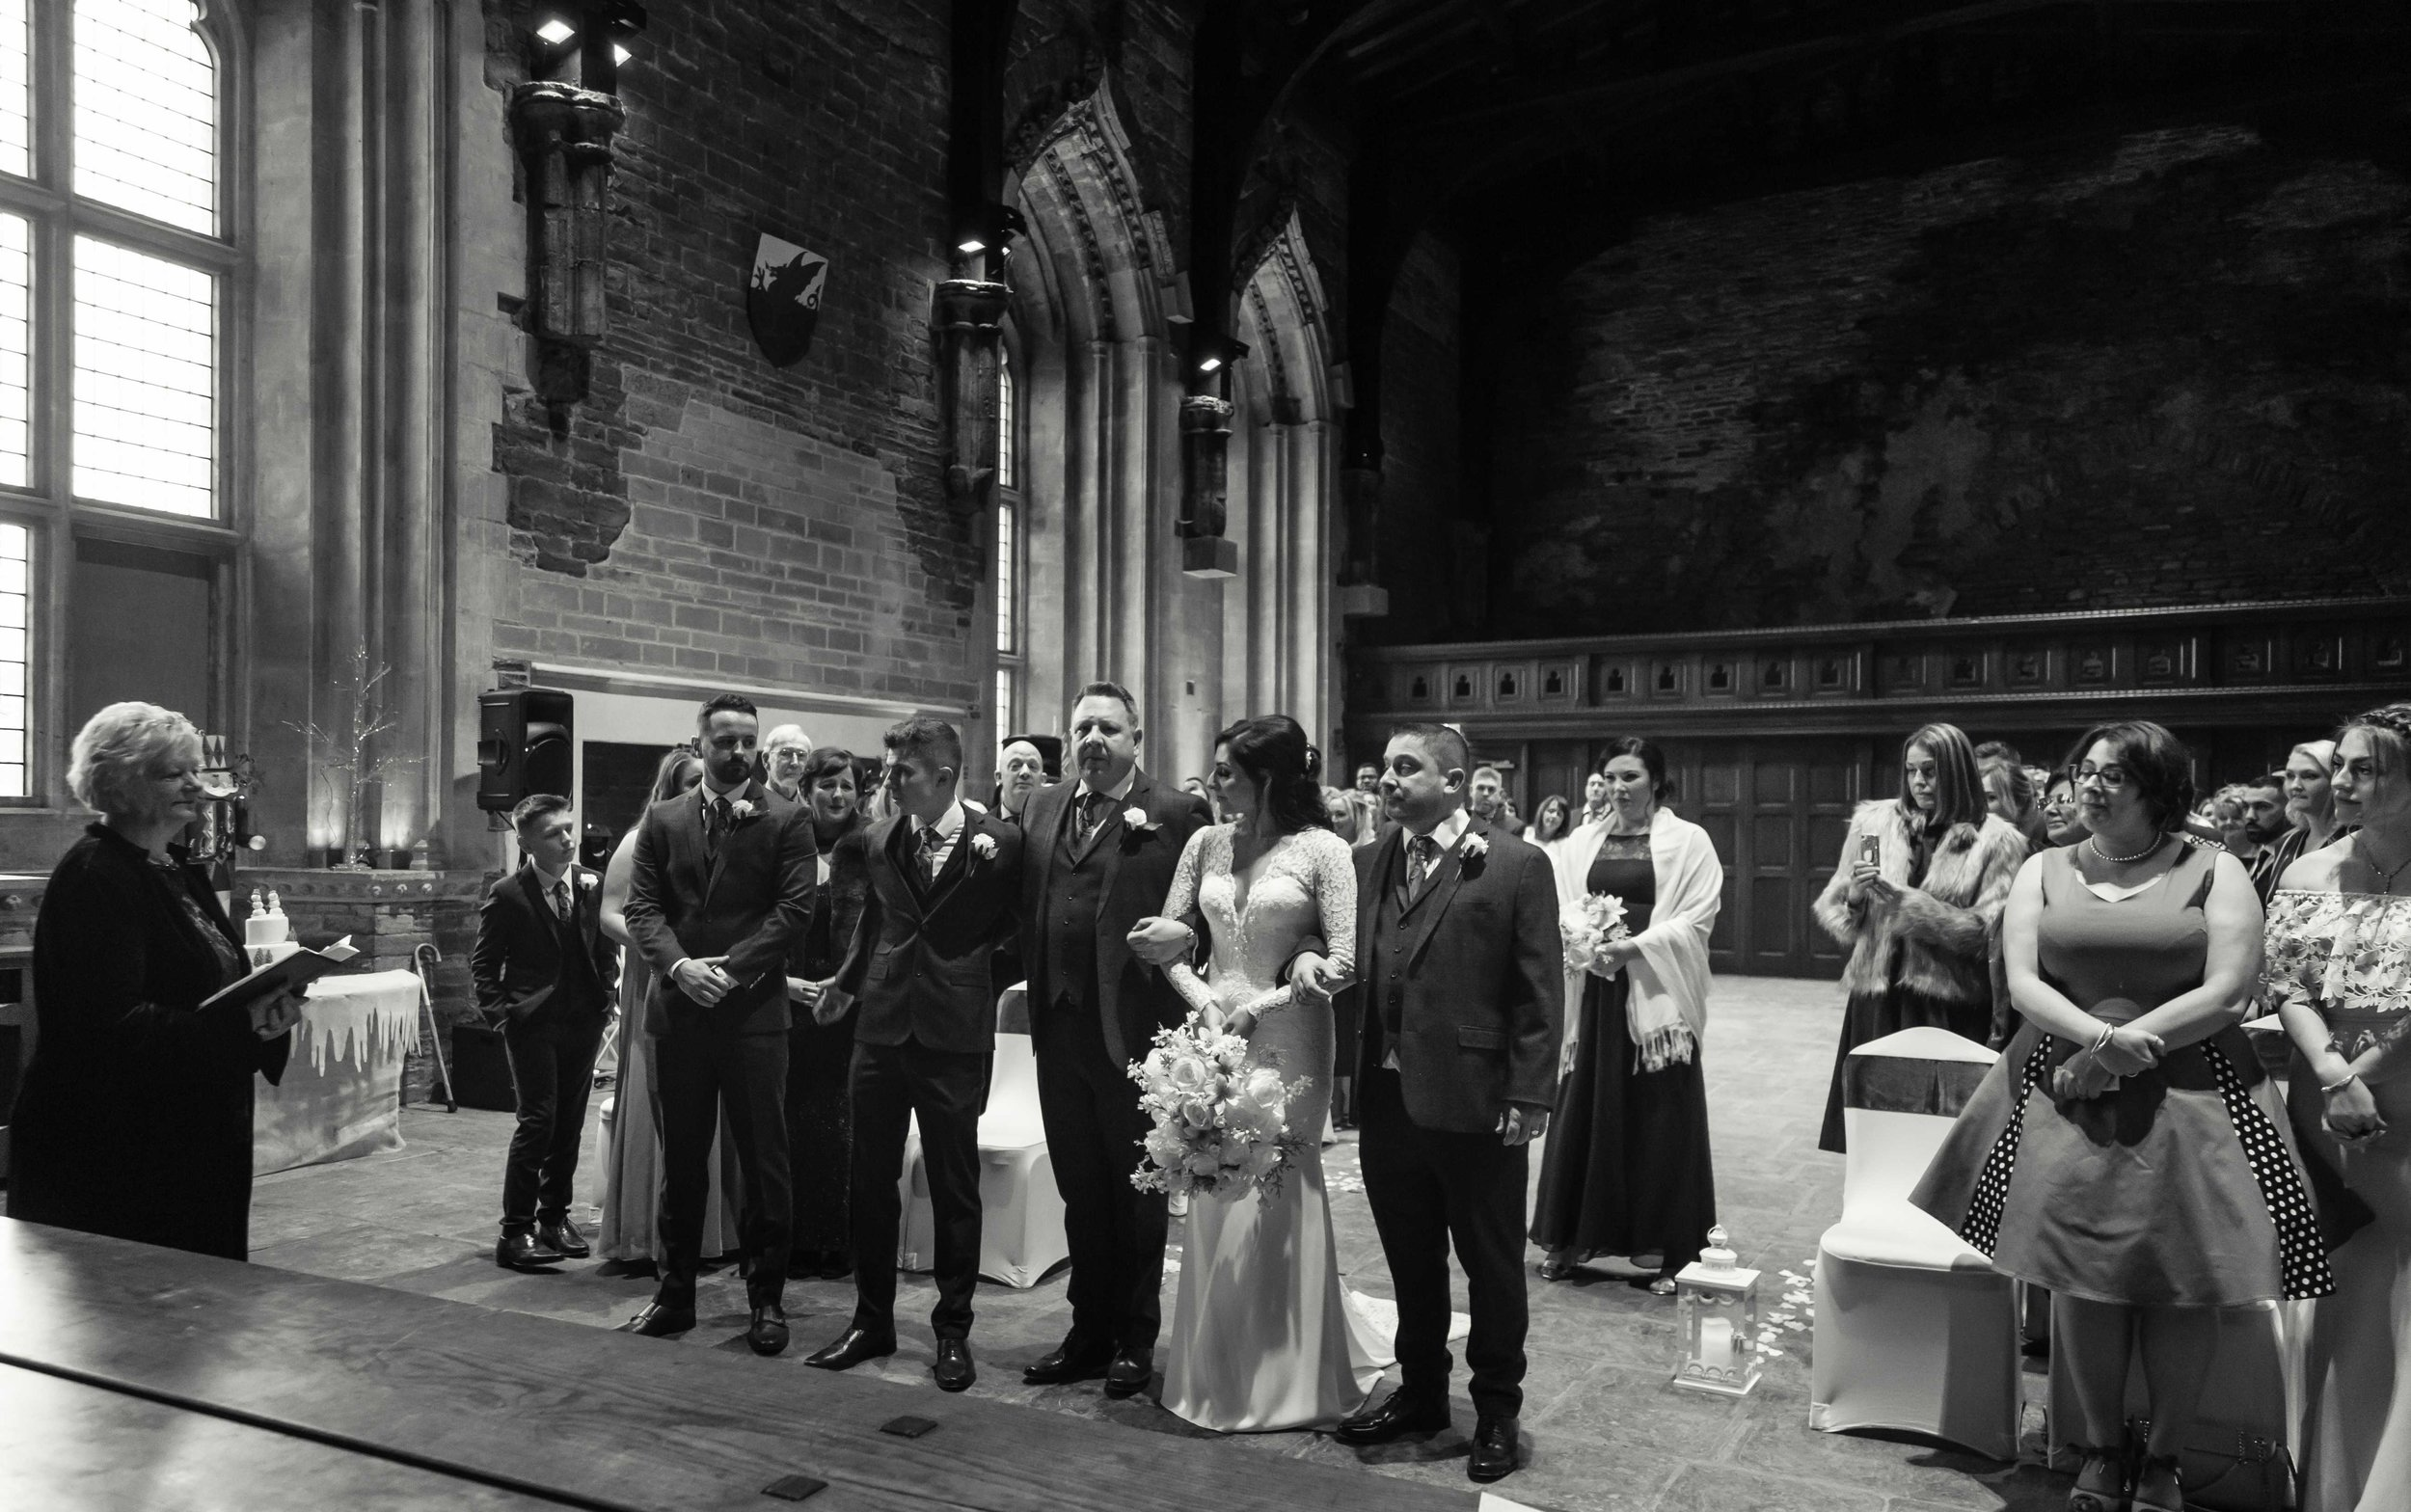 Wedding ceremony at Caerphilly Castle, The Great Hall